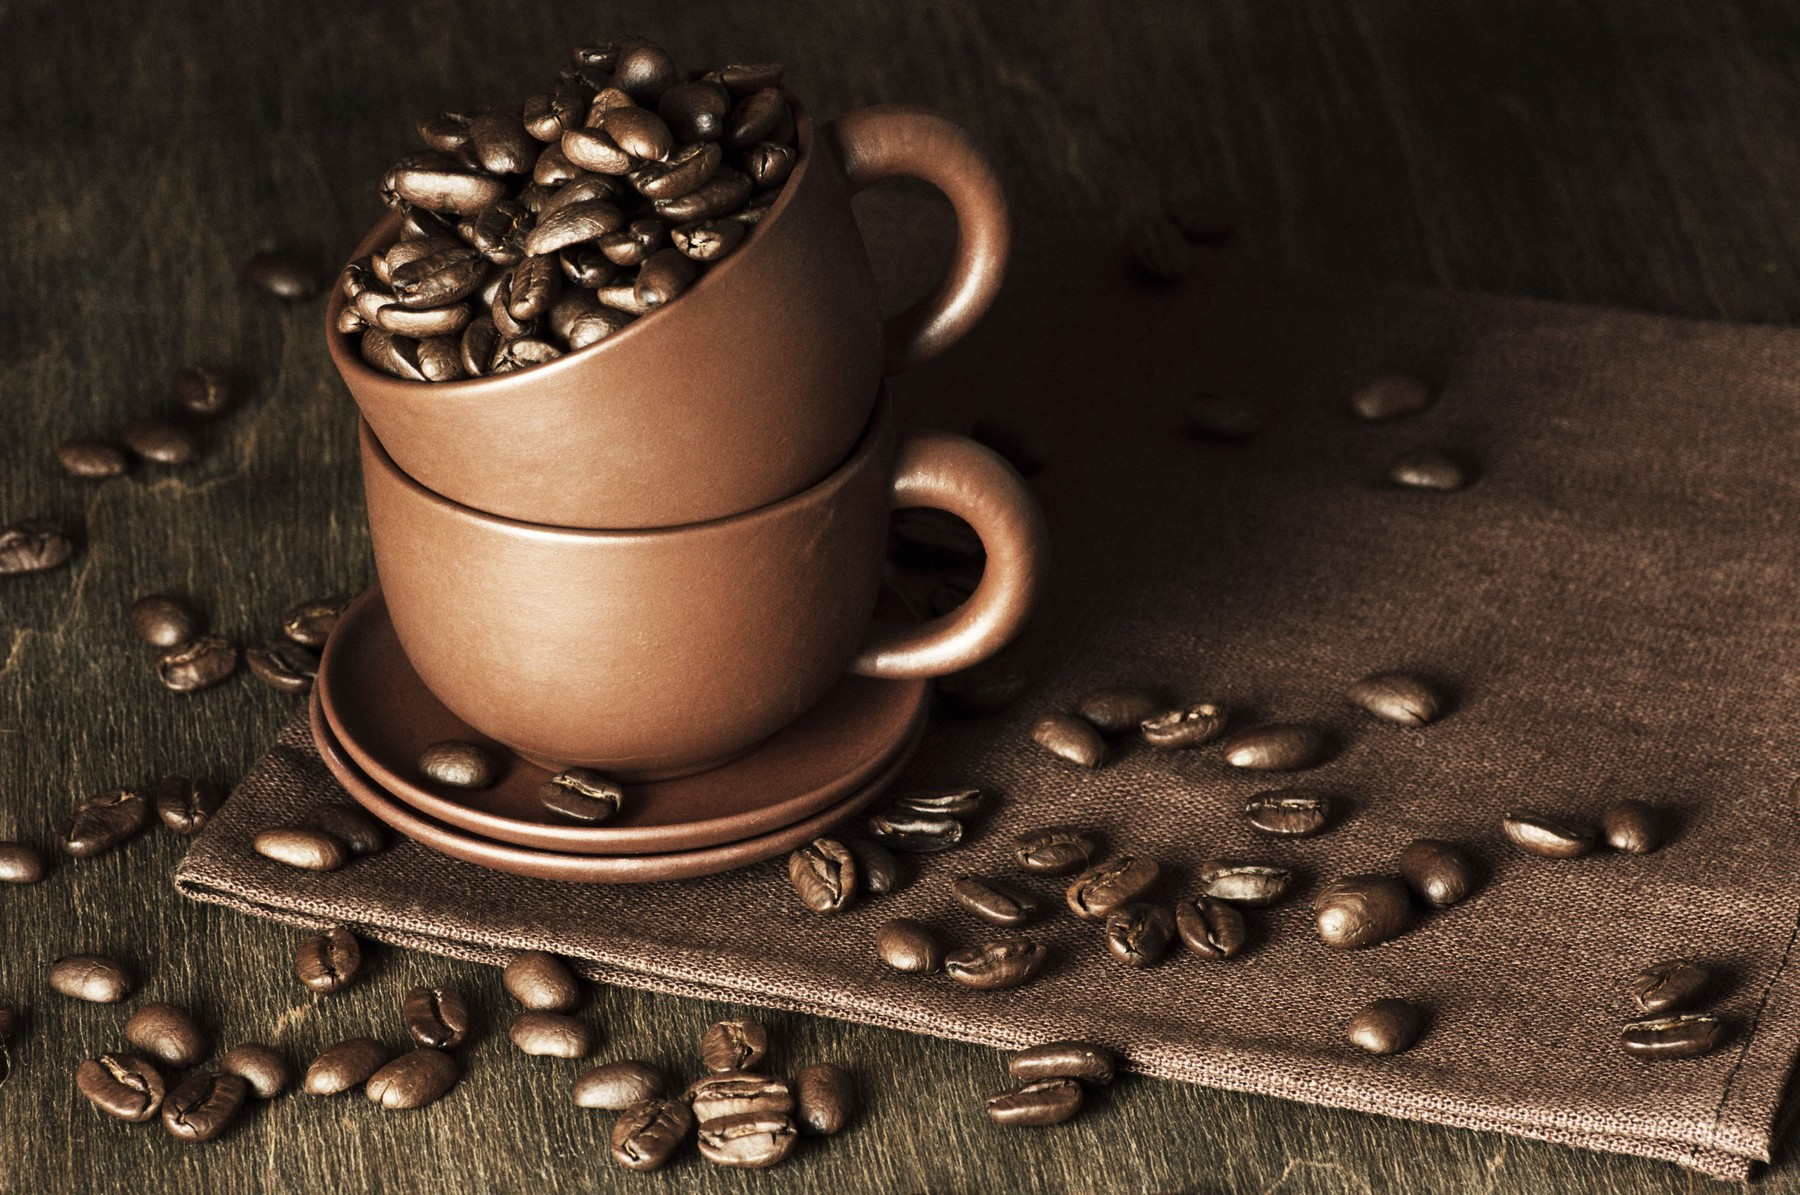 Roasted coffee beans in ceramic cups on vintage wooden background., Image: 185807335, License: Royalty-free, Restrictions: , Model Release: no, Credit line: Profimedia, Stock Budget